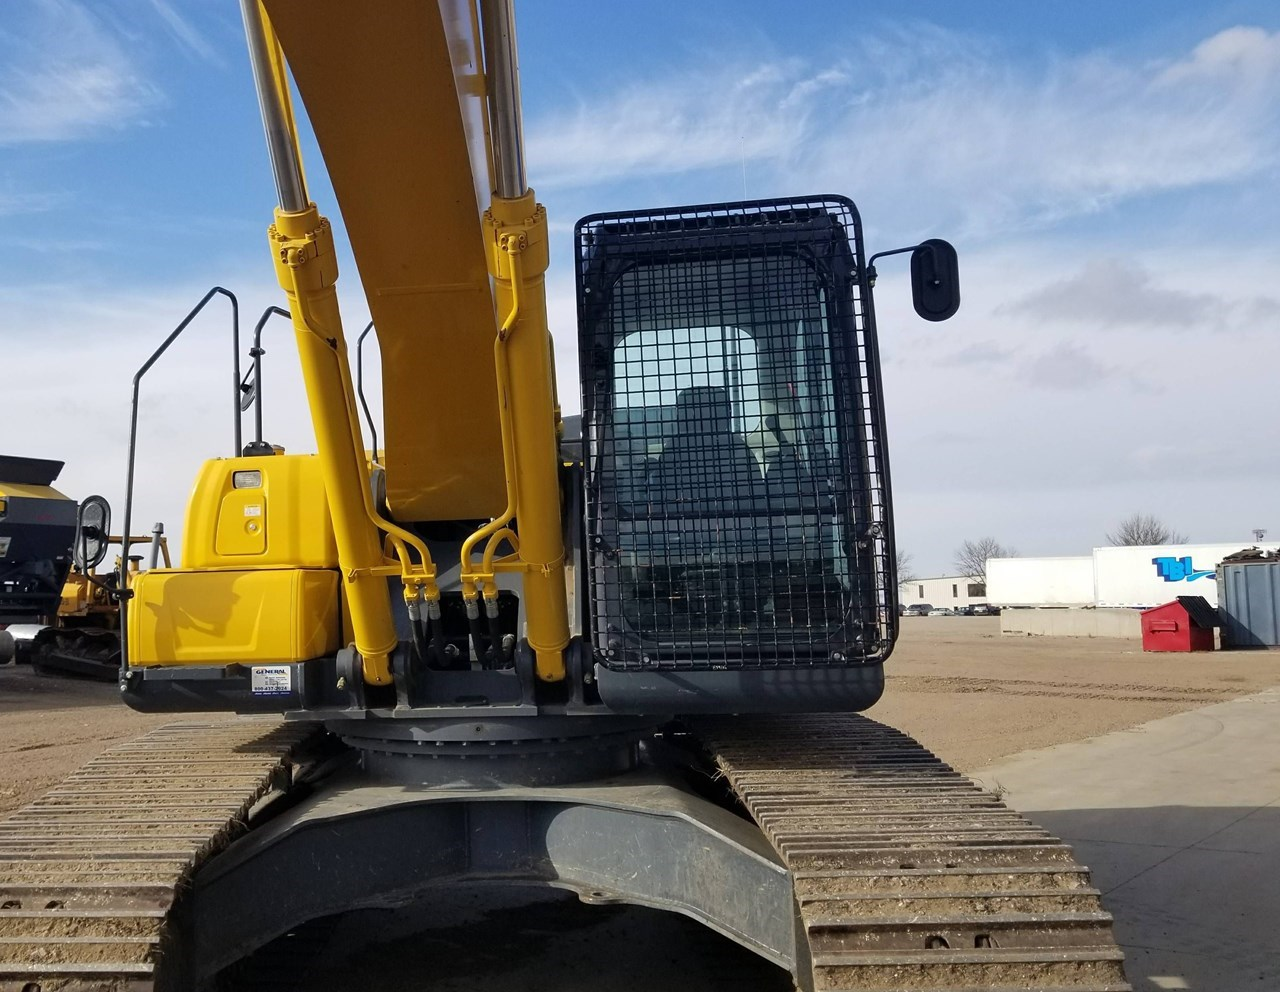 2013 HydrauliCircuit Technology, Inc CABGUARD Excavator Attachment For Sale